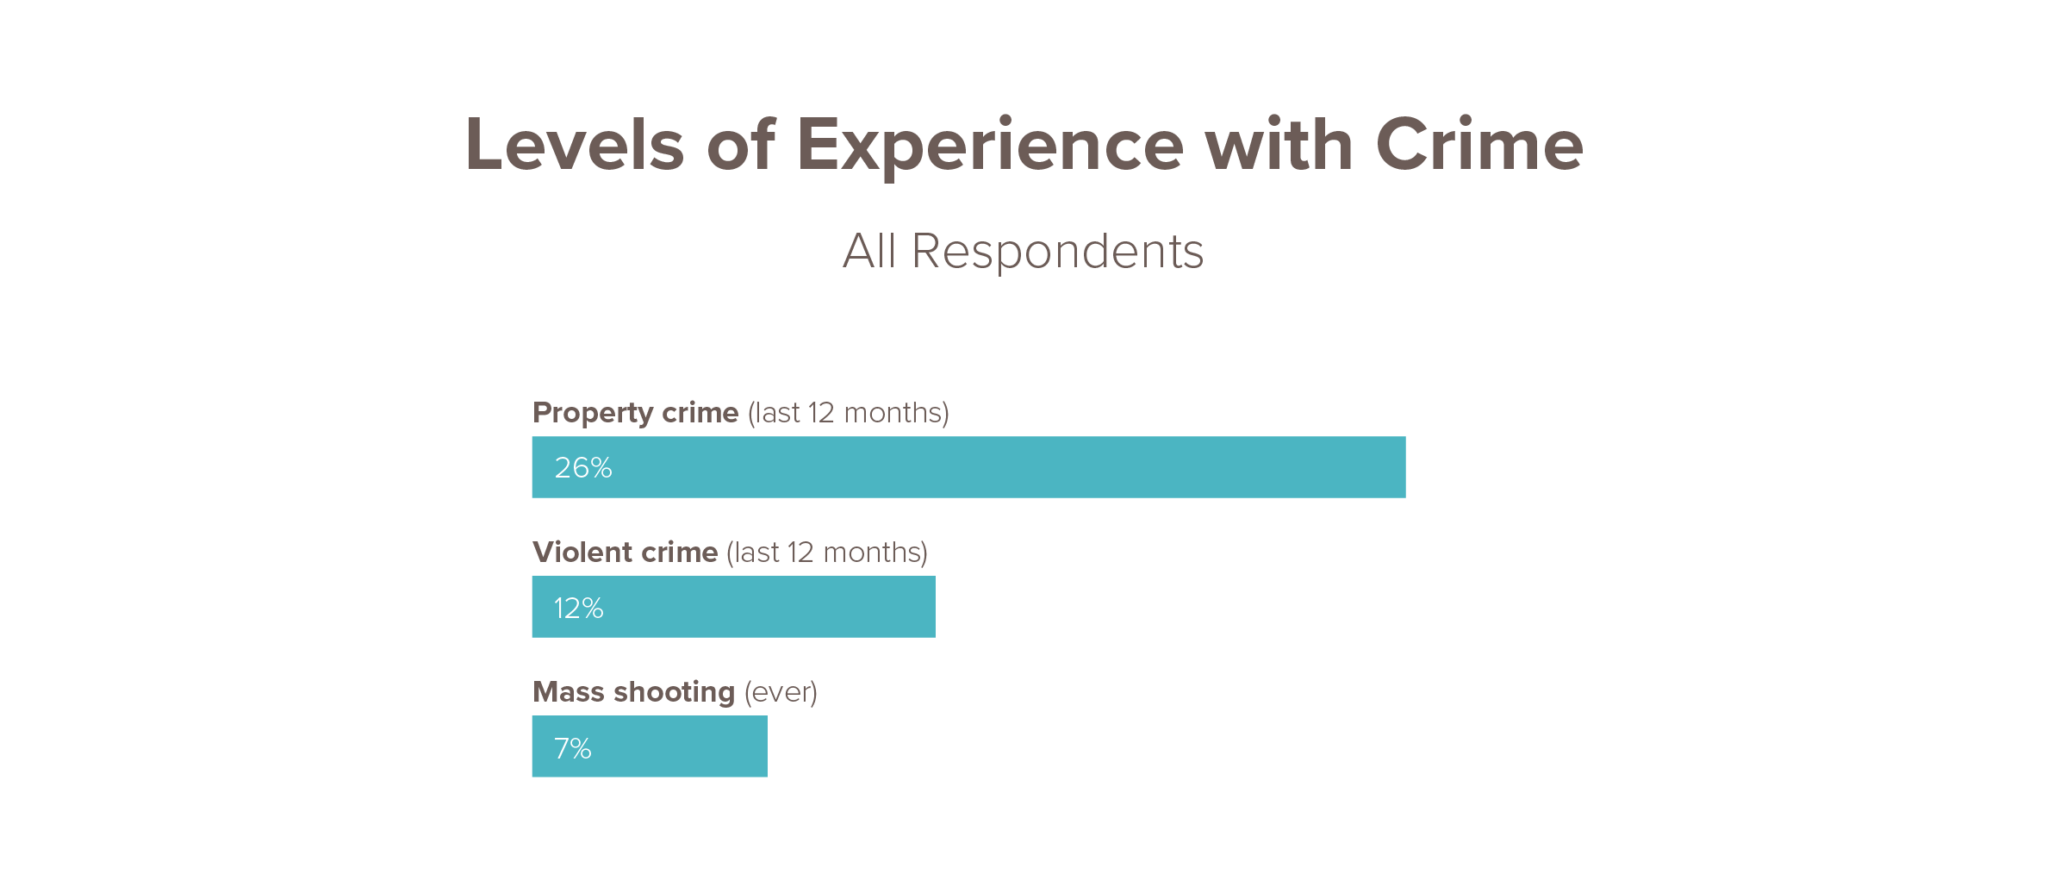 Infographic showing levels of experience with crime in the US; 26% property crime, 12% violent crime, 7% mass shooting